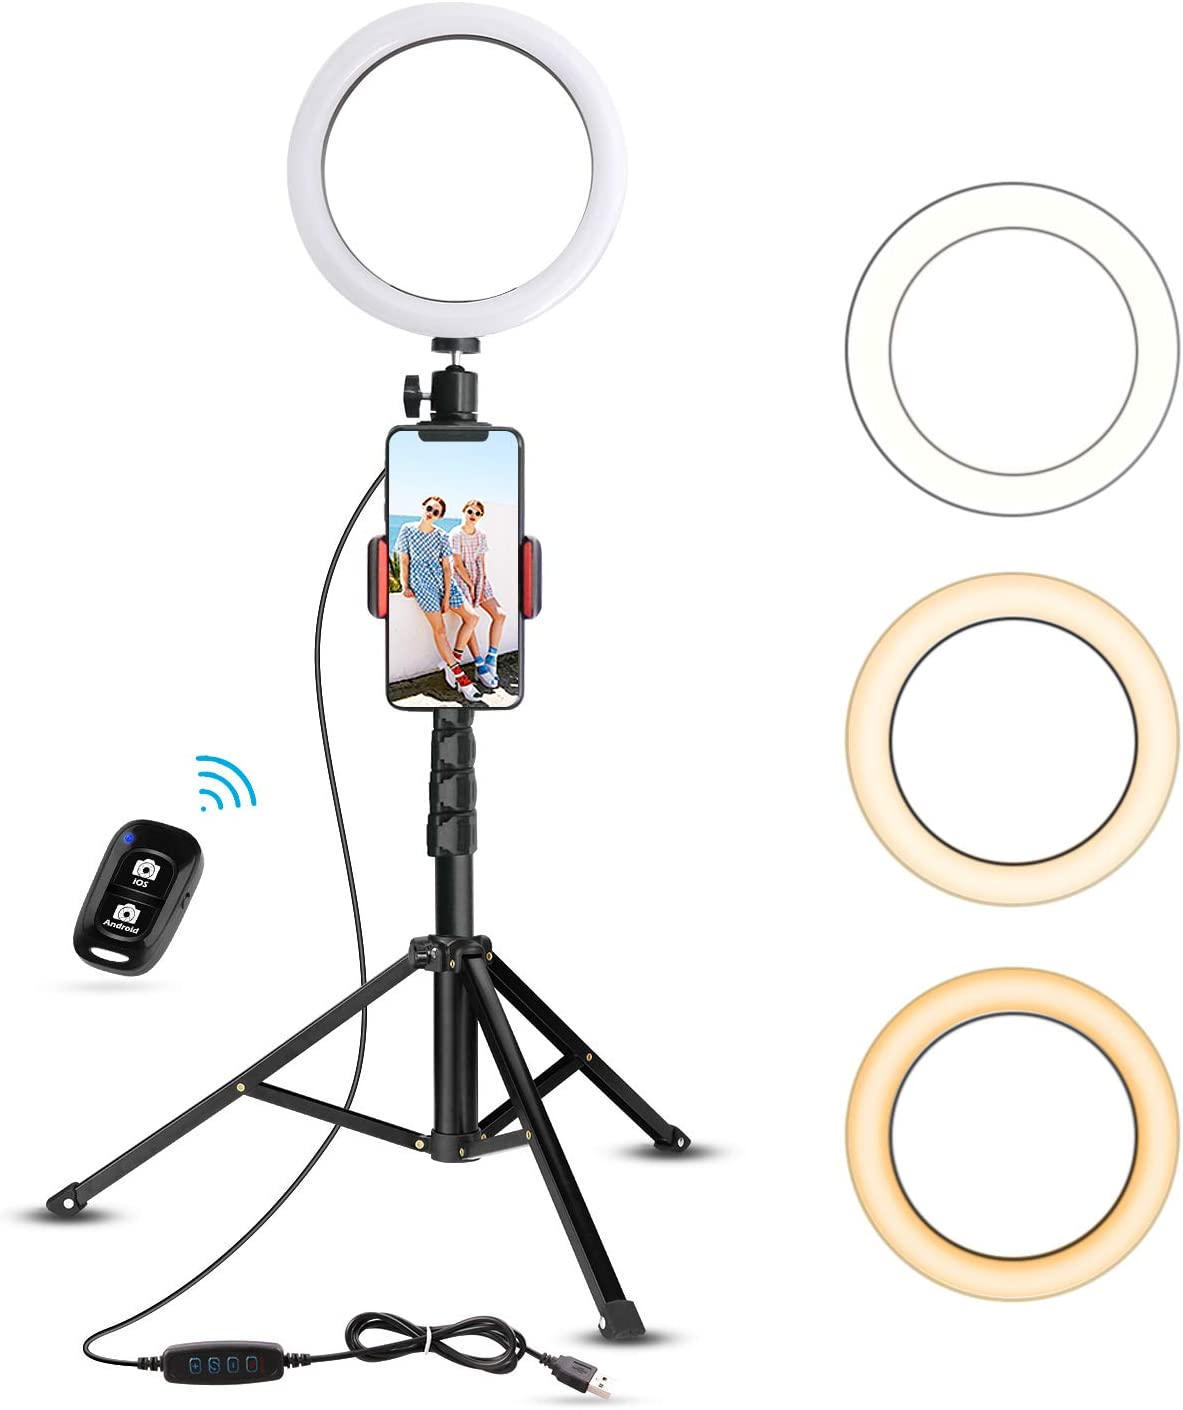 "8"" Selfie Ring Light with Tripod Stand & Cell Phone Holder for Live Stream/Makeup, UBeesize Mini Led Camera Ringlight for YouTube Video/Photography Compatible with iPhone Xs Max XR Android (Upgraded) 61Nwtf2xc6L"